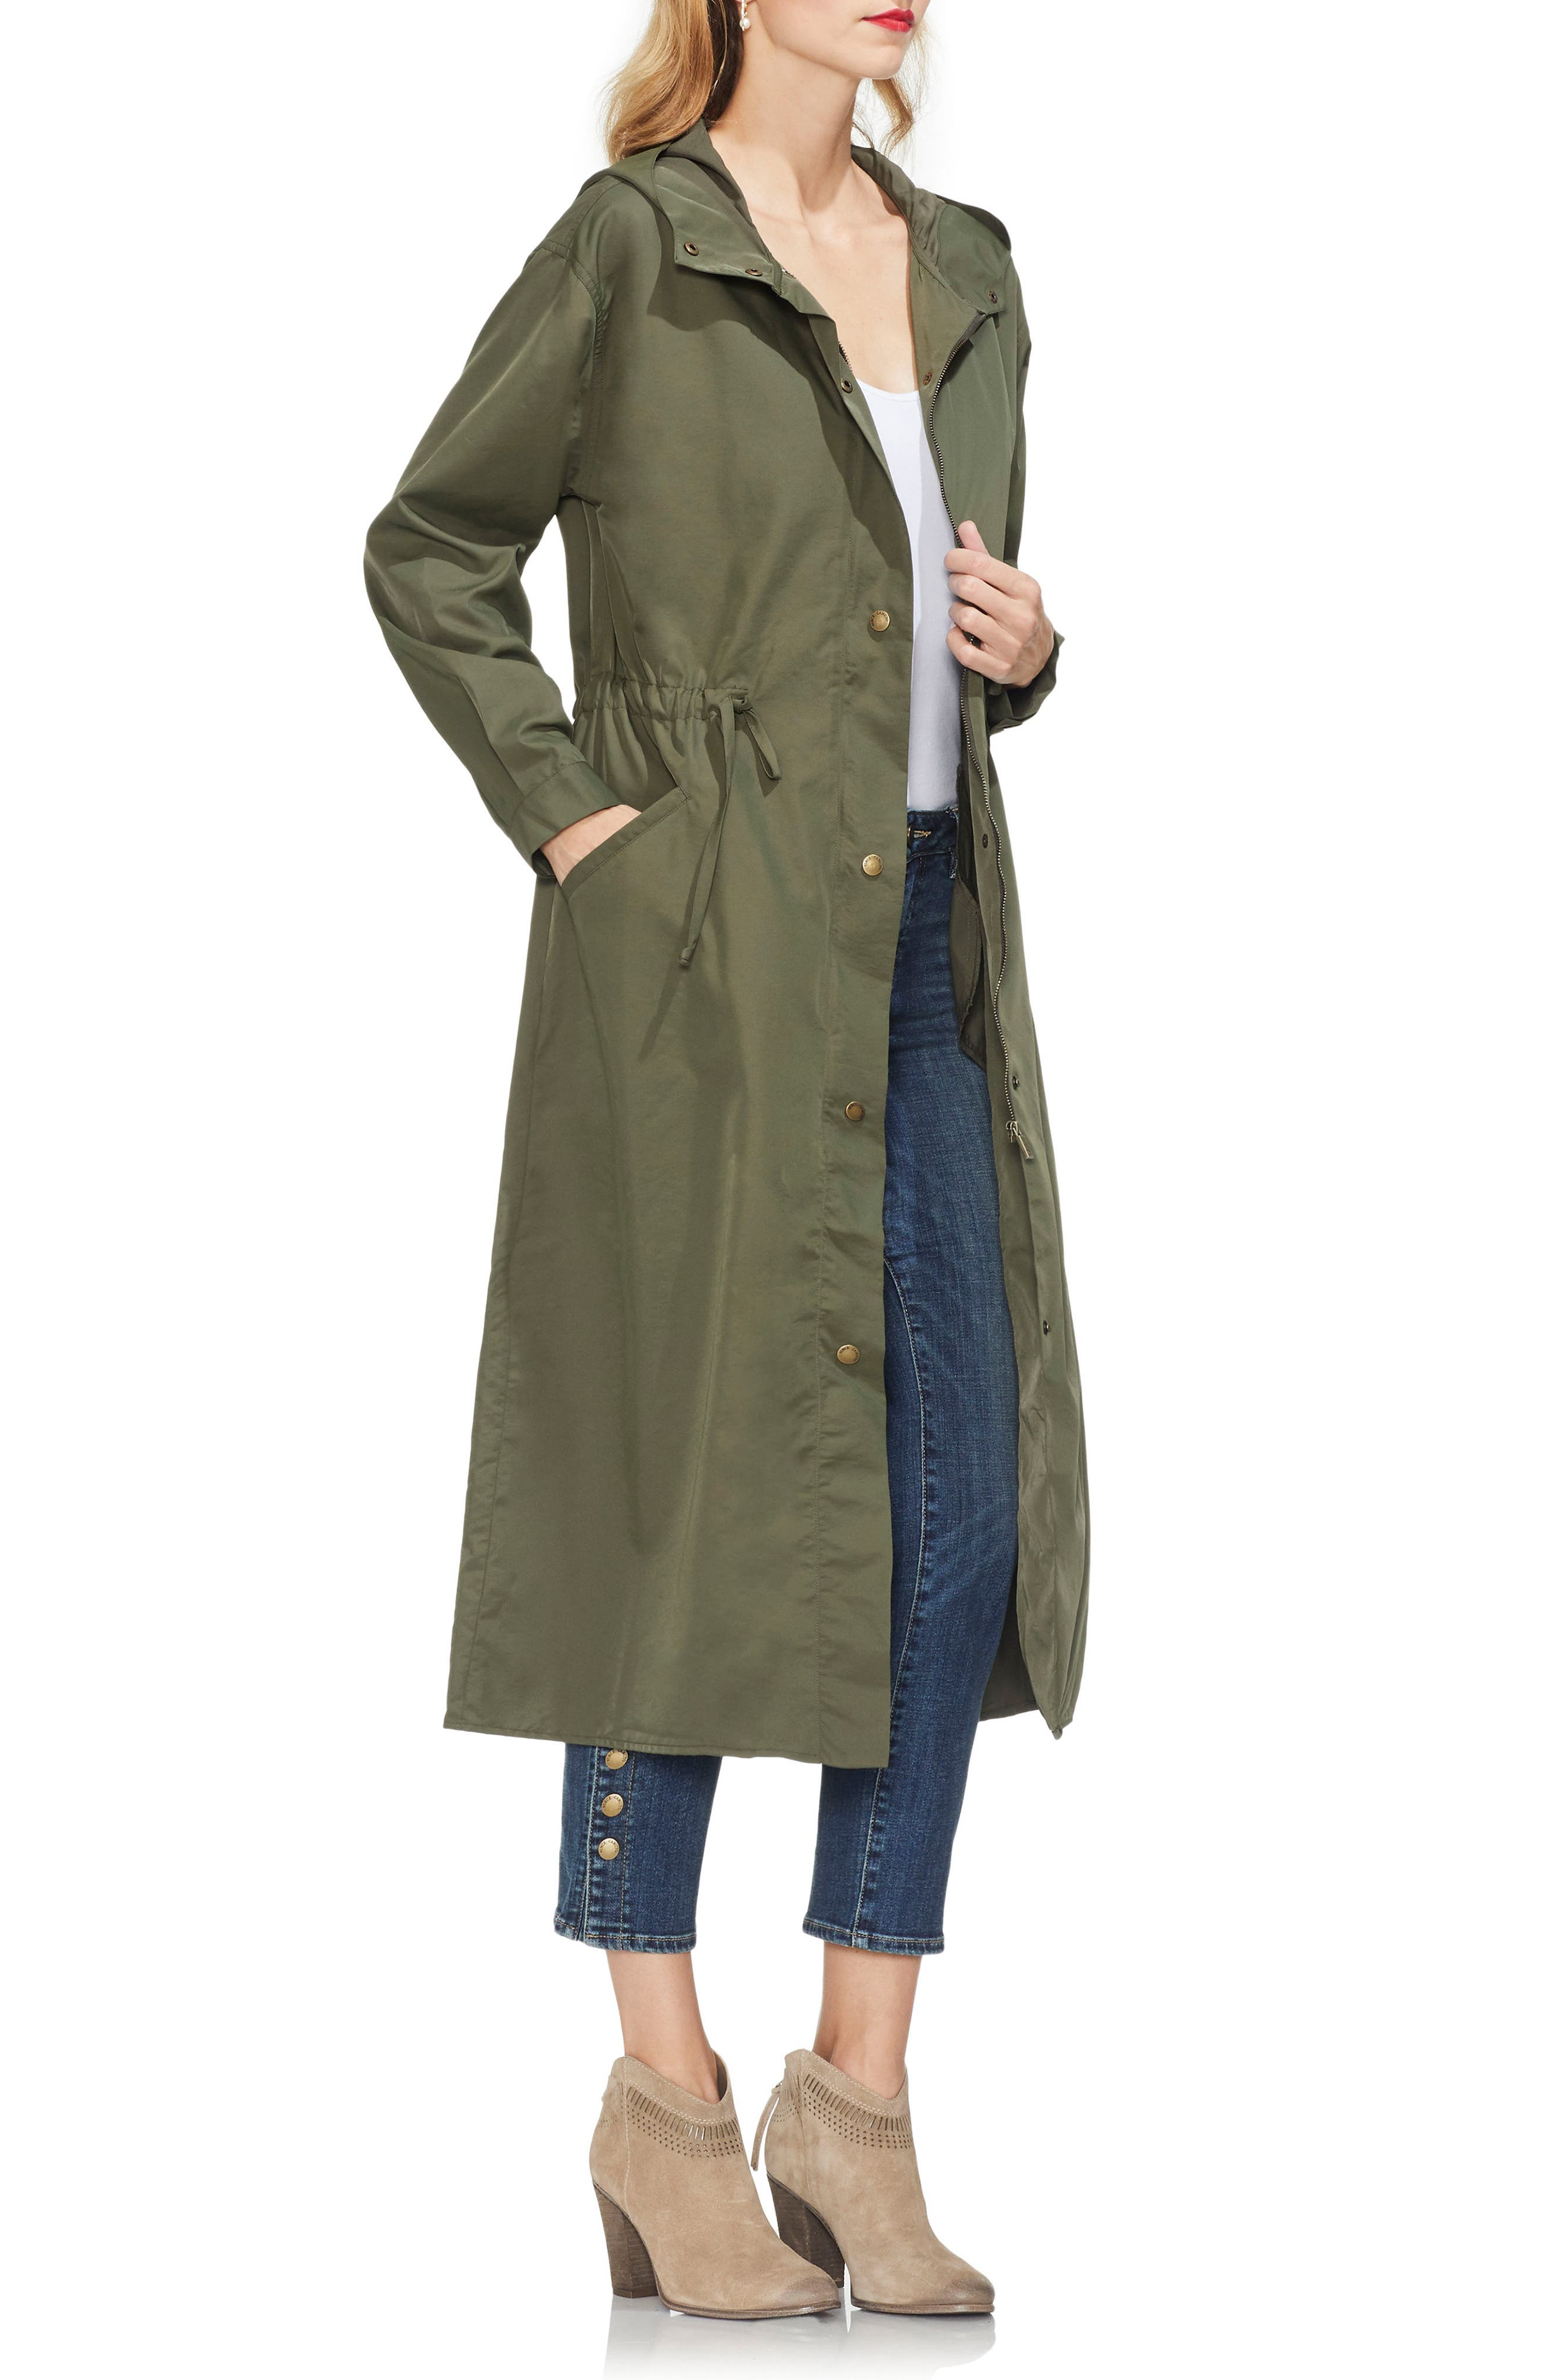 VINCE CAMUTO,                             Water Resistant Hooded Rain Jacket,                             Alternate thumbnail 3, color,                             341